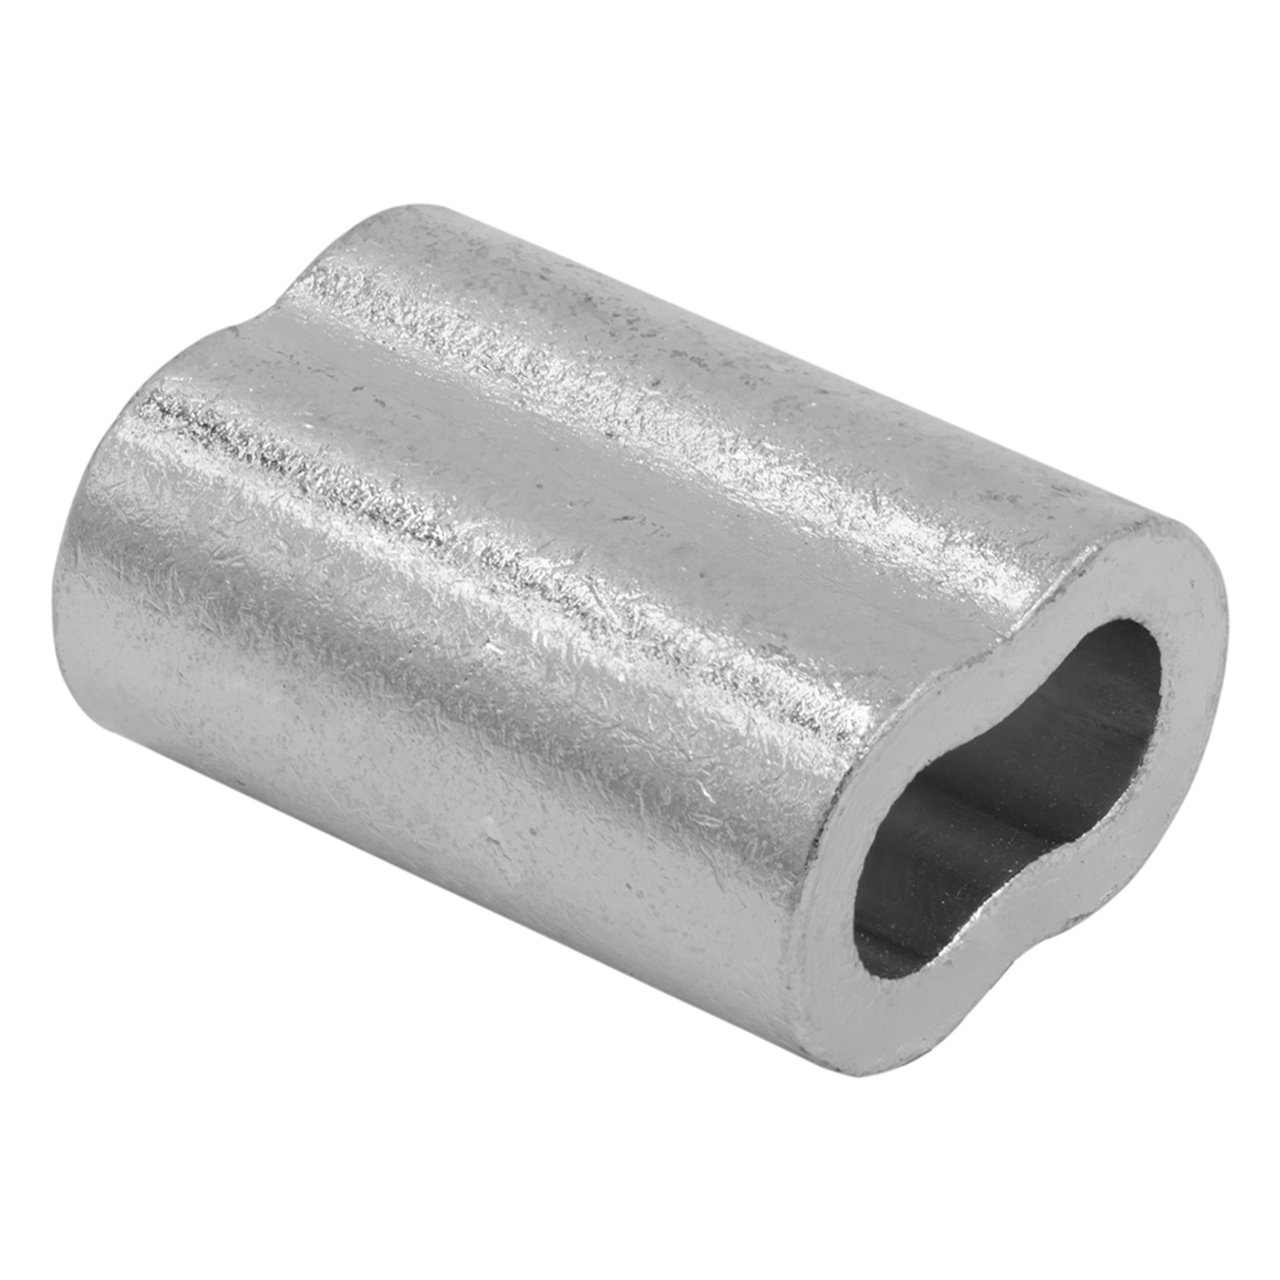 SwageRight Zinc Plated Copper Swage Sleeves & Ferrules | Oval Duplex Crimping Wire Rope Fittings